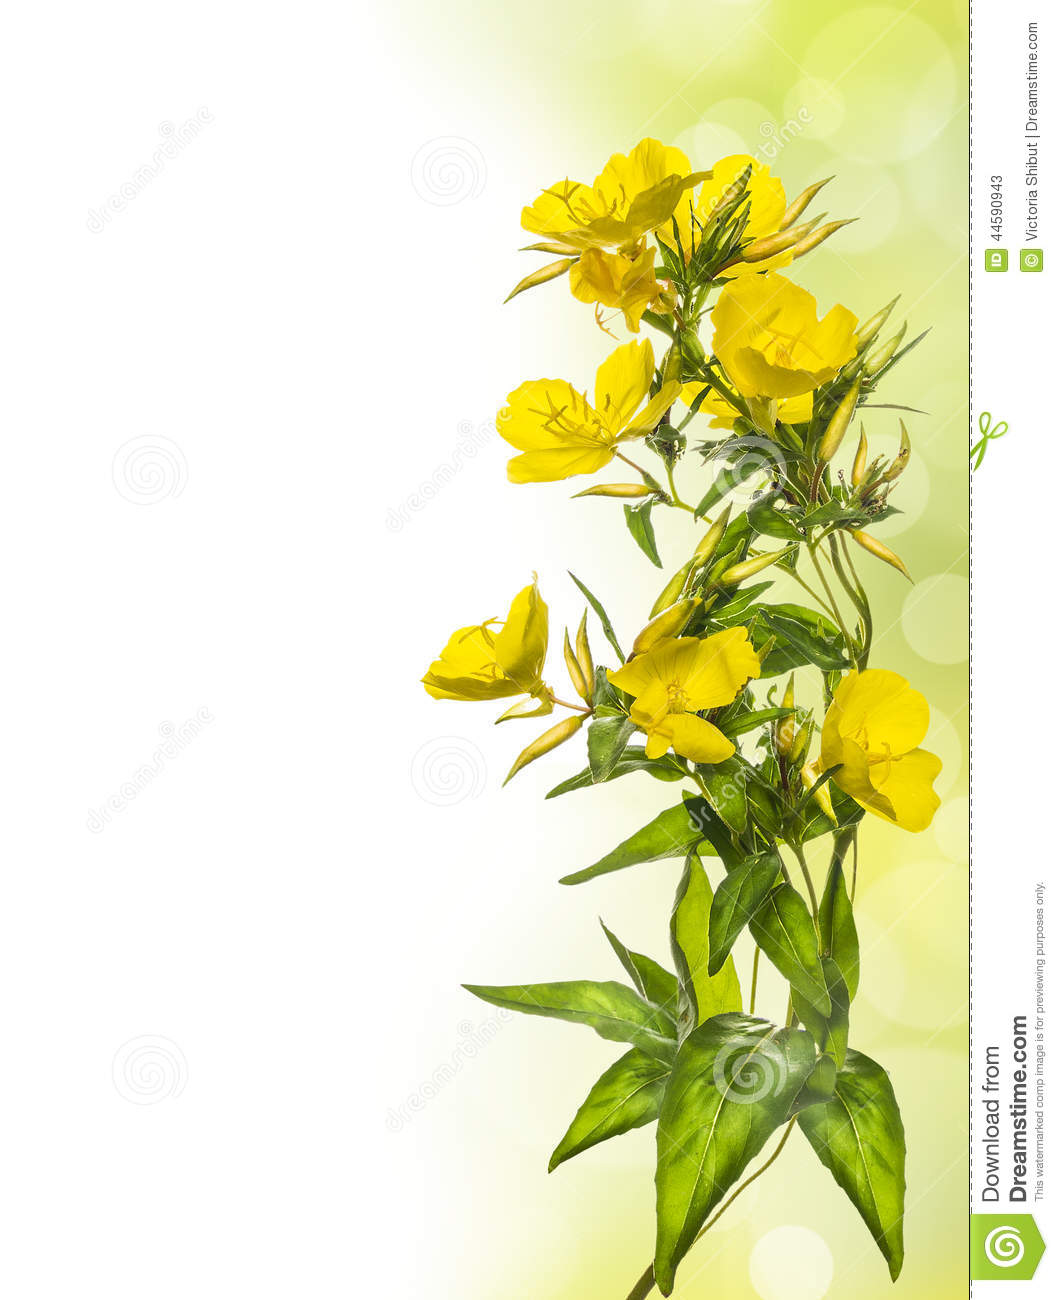 Yellow Flowers Floral Border Stock Image Image Of Empty Fresh